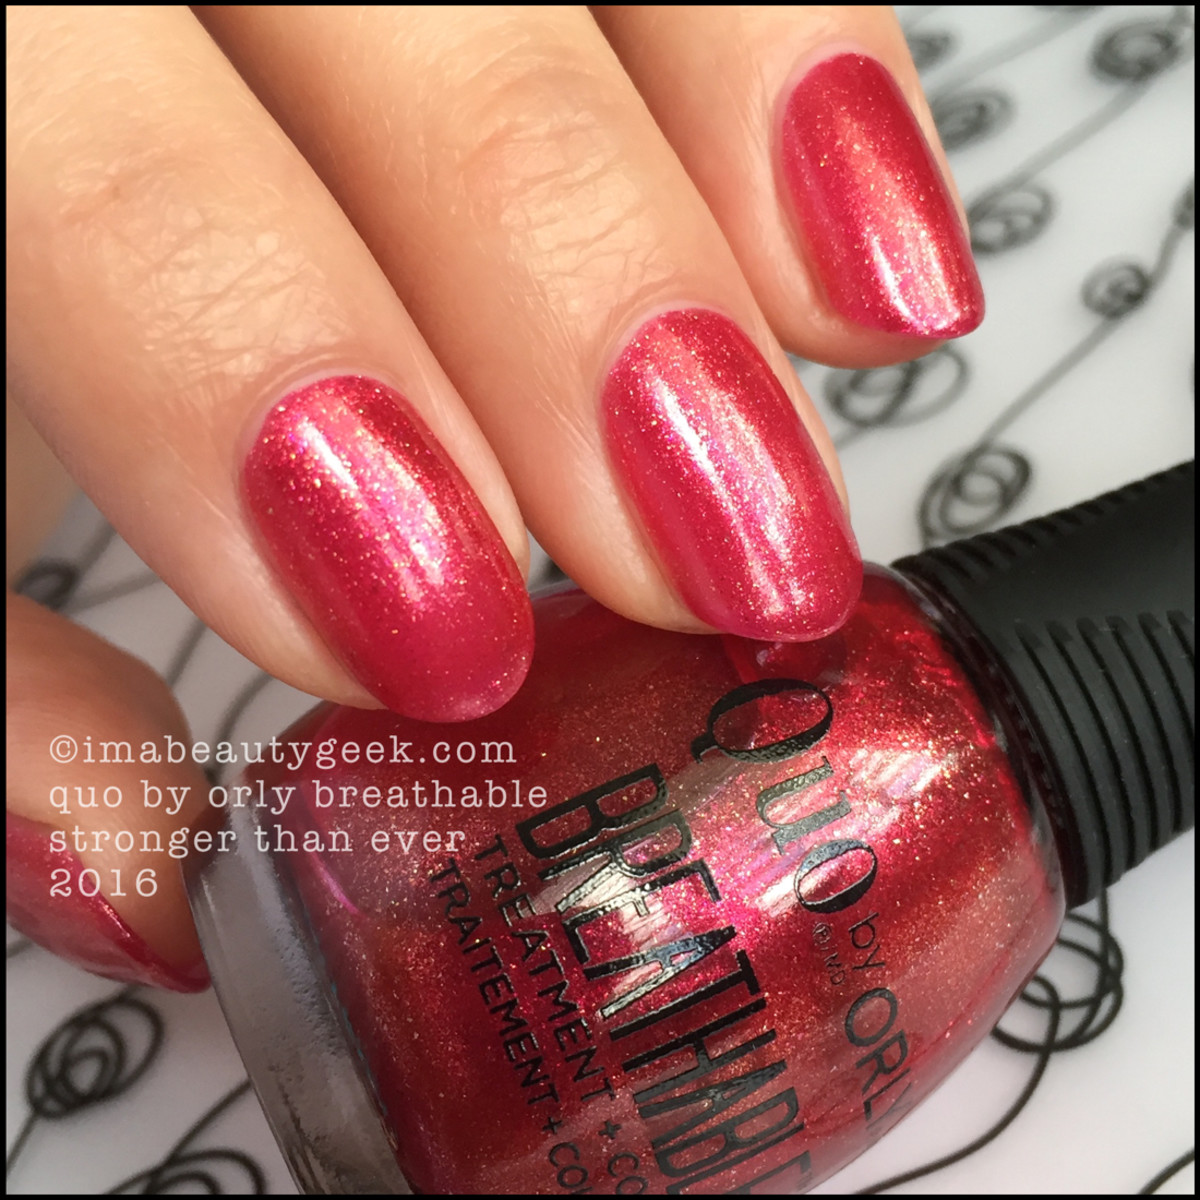 Orly Breathable Nail Polish Treatment_Quo by Orly Breathable Stronger than Ever